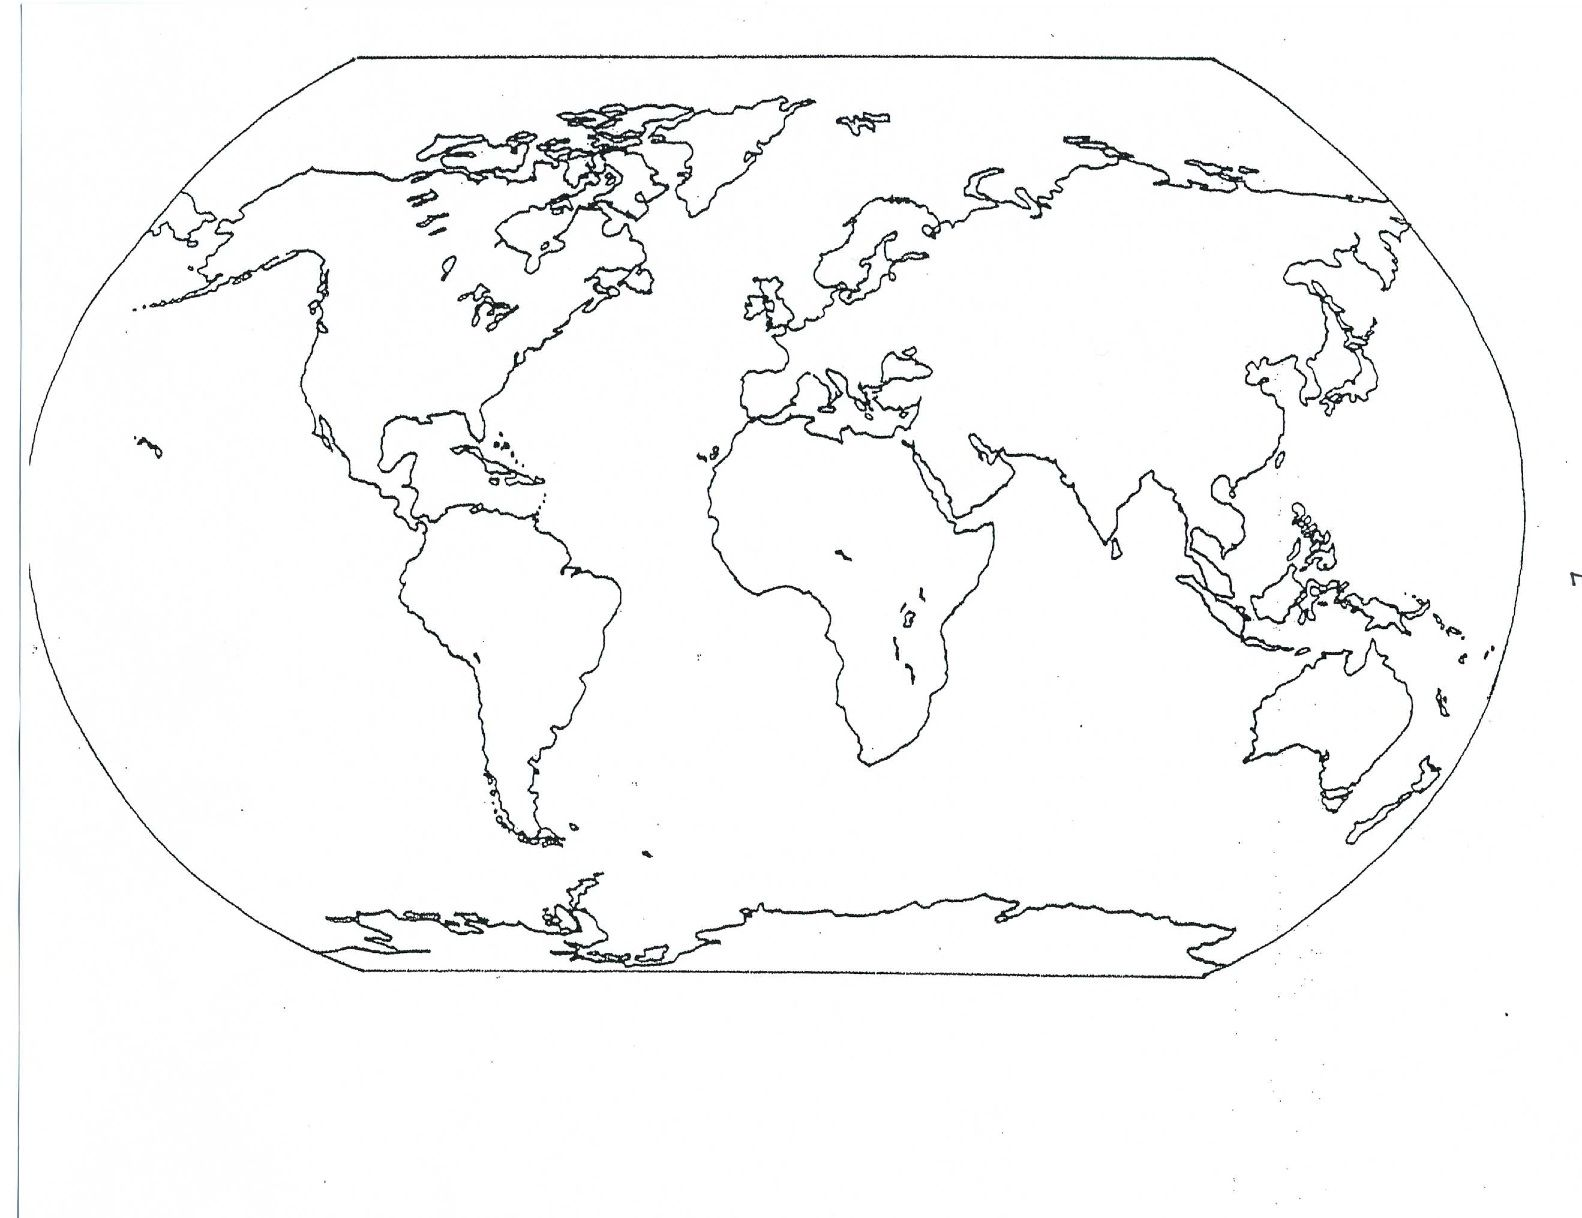 Here is a blank map to be used as a study guide. Click on